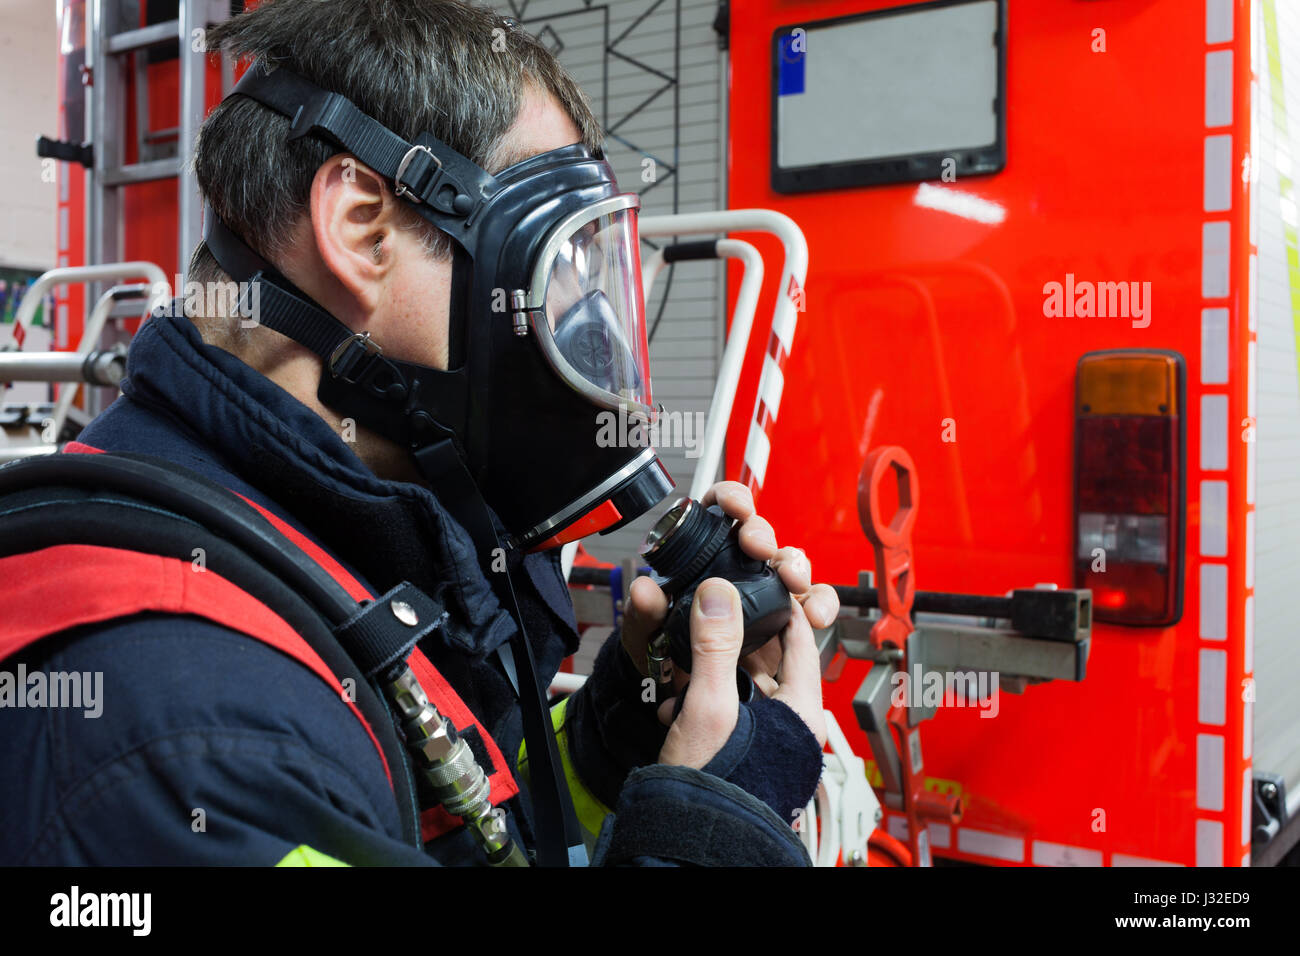 German firefighter with mask in action - Stock Image